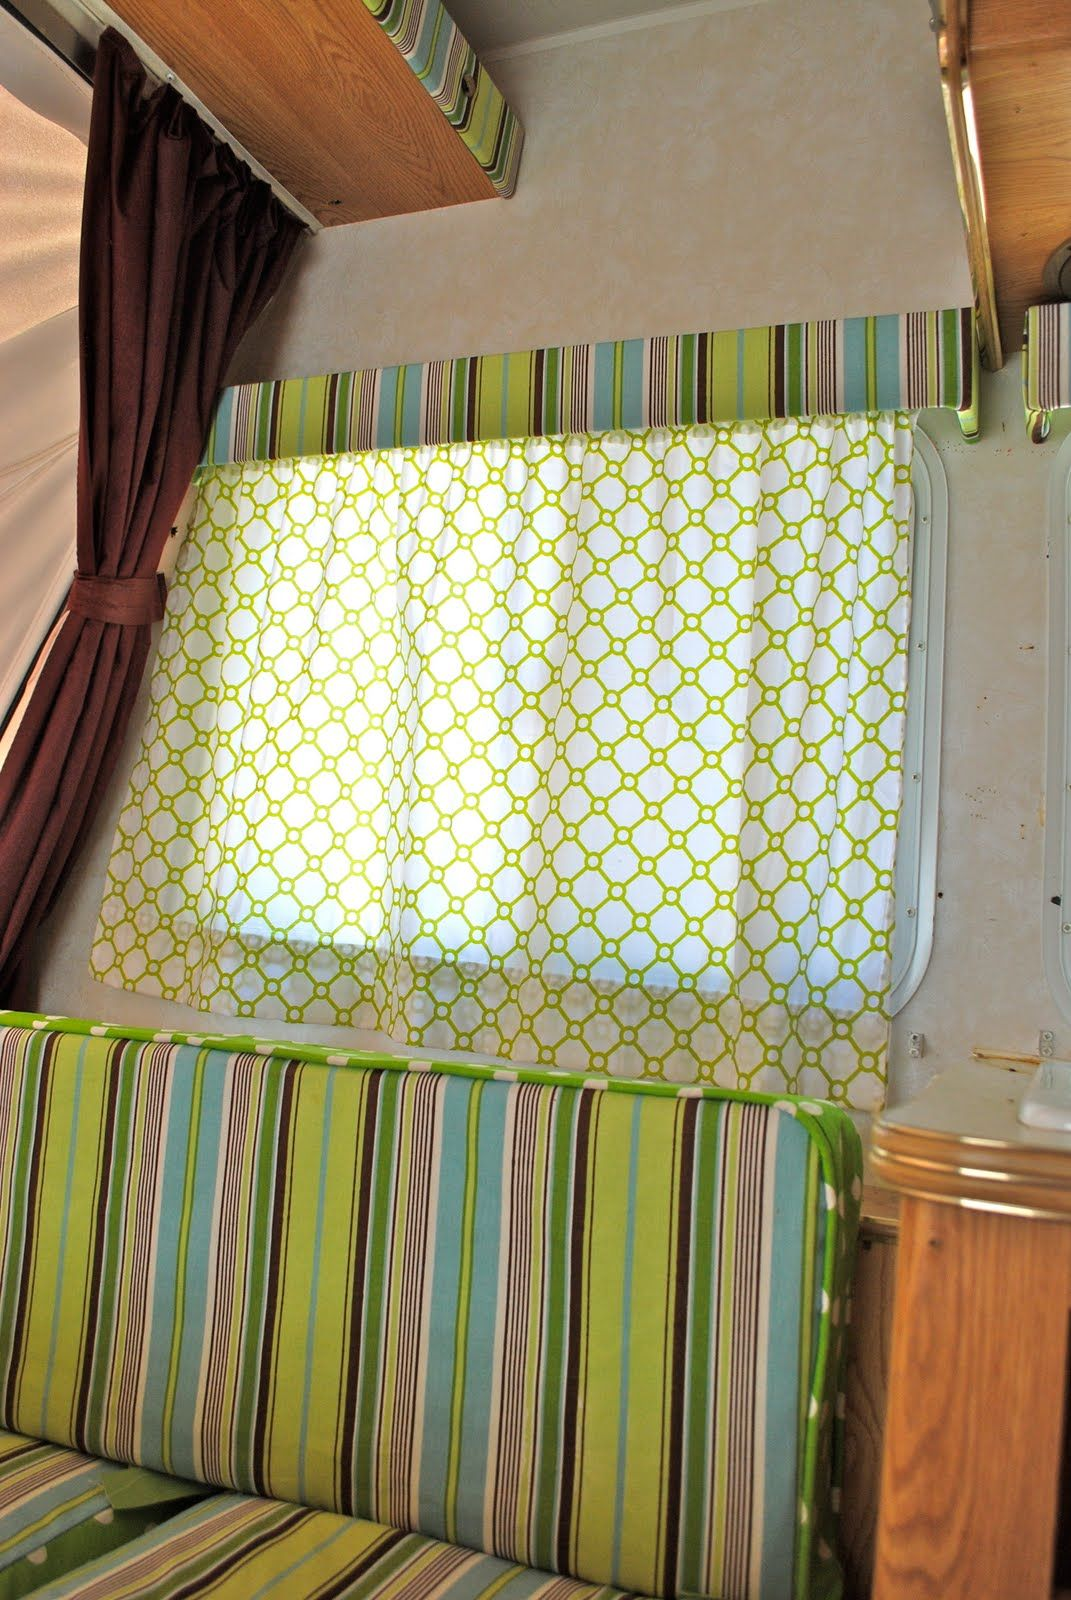 Trailer Curtains Prettify Your Camper She Stapled The Fabric Right Over The Old